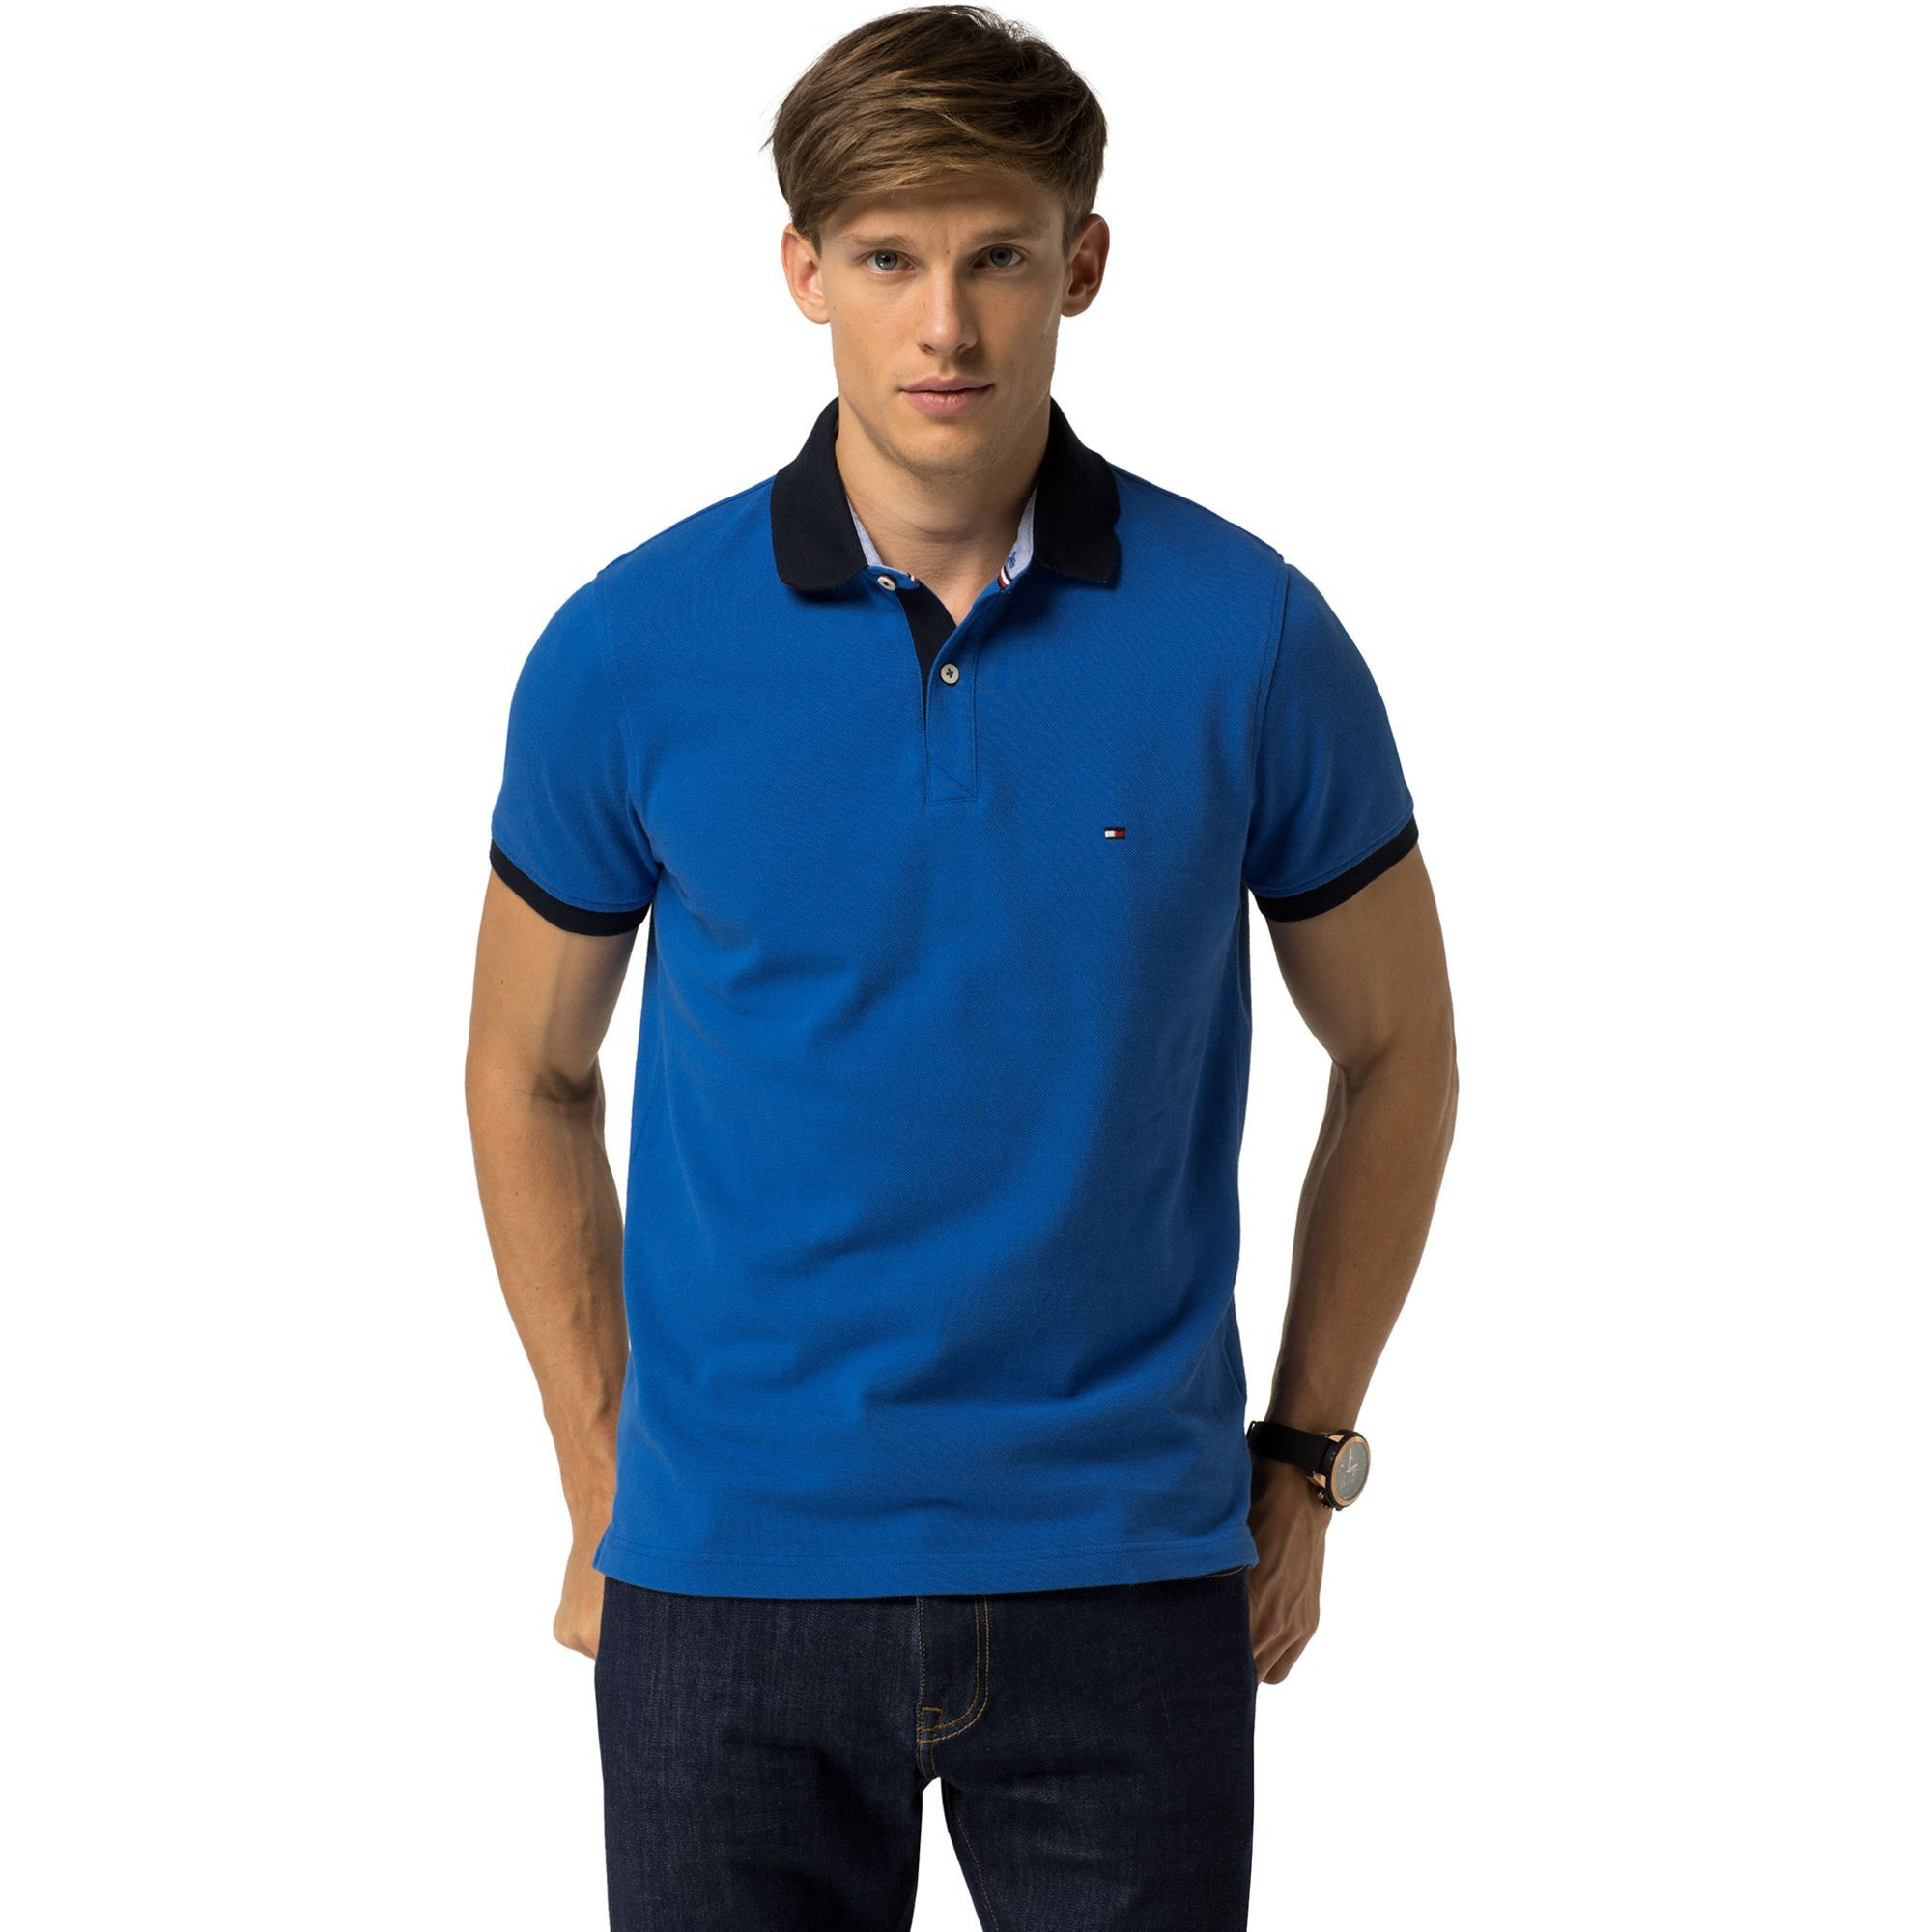 b64aa29d TOMMY HILFIGER SLIM FIT CONTRAST POLO - NAUTICAL BLUE. #tommyhilfiger  #cloth #